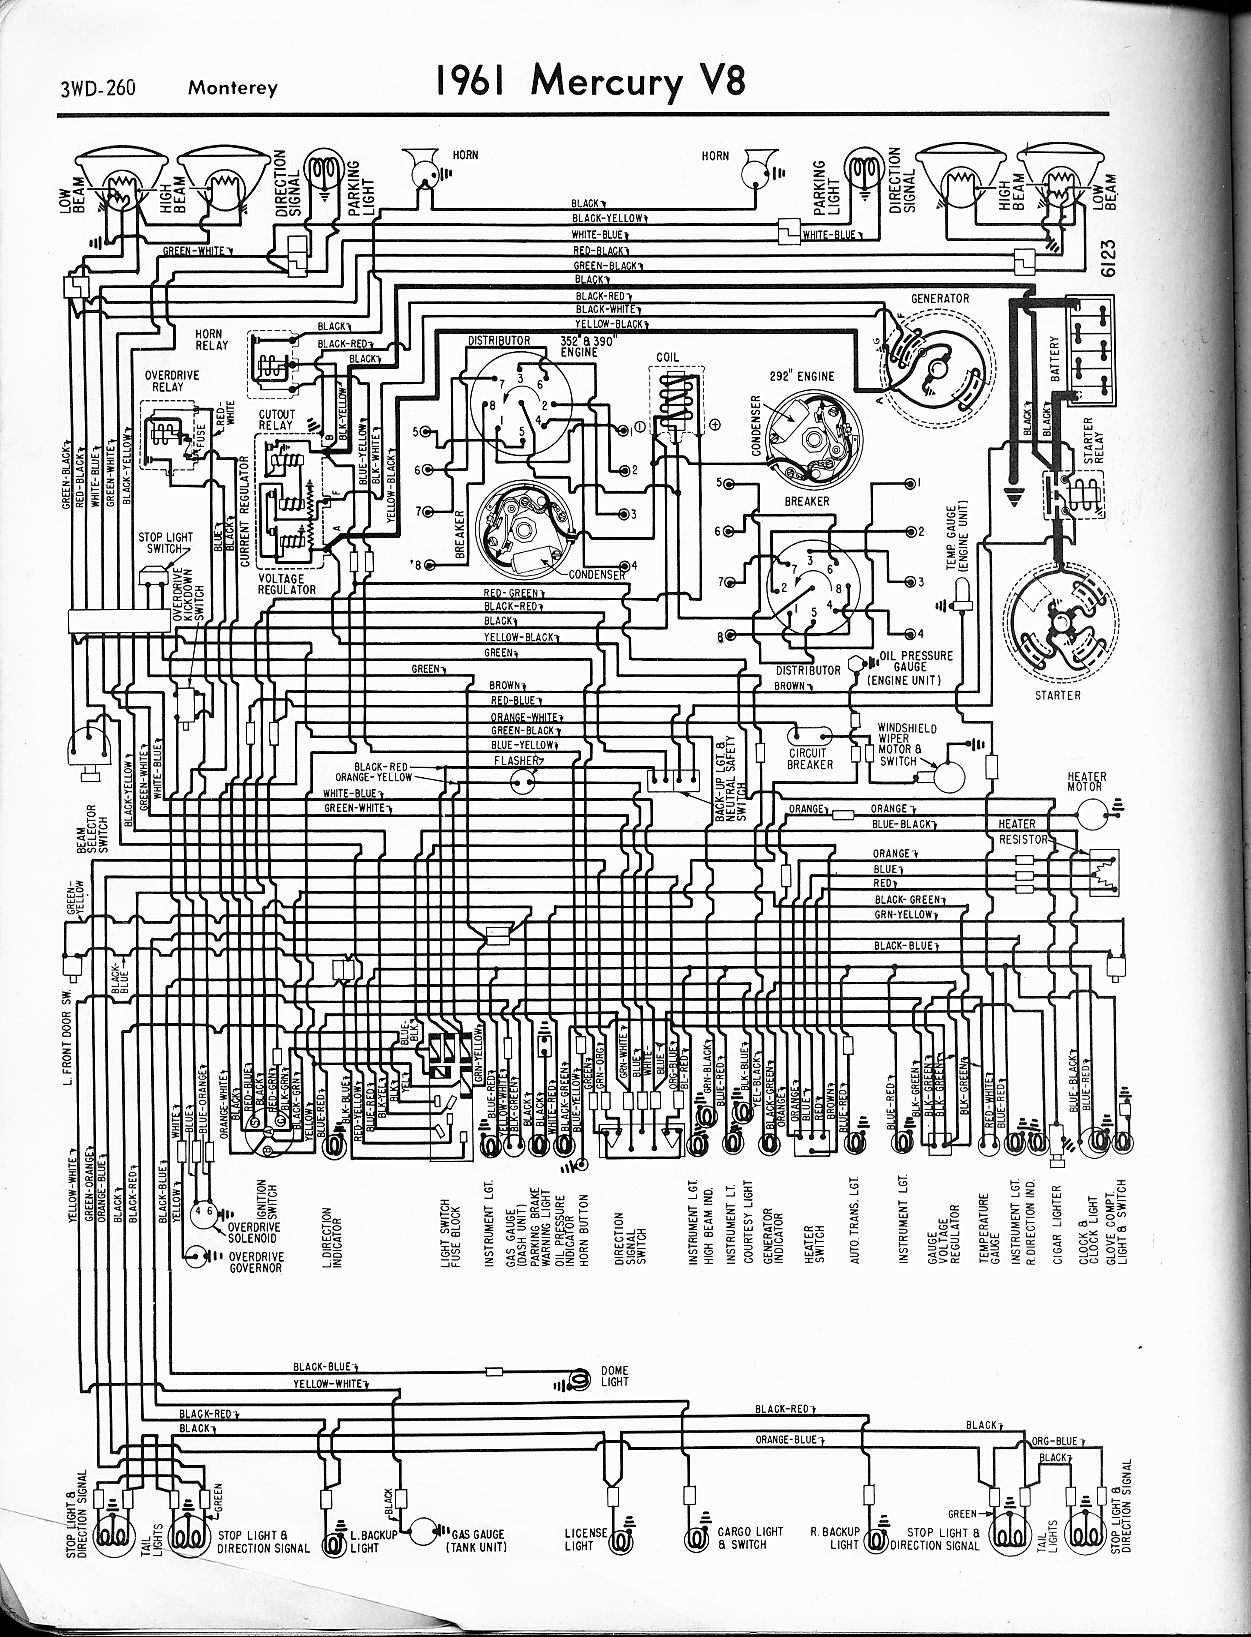 1966 Mercury Comet Wiring Diagram | Wiring Diagram on amc amx wiring diagrams, chrysler lebaron wiring diagrams, volvo 240 wiring diagrams, dodge dakota wiring diagrams, jeep wrangler wiring diagrams, imperial wiring diagrams, ford ranchero seats, peterbilt wiring diagrams, ford ranchero engine, oldsmobile alero wiring diagrams, mercury sable wiring diagrams, ford ranchero parts, jeep cj wiring diagrams, dodge ramcharger wiring diagrams, jeep patriot wiring diagrams, pontiac grand prix wiring diagrams, oldsmobile 98 wiring diagrams, plymouth barracuda wiring diagrams, chrysler concorde wiring diagrams, saab 9-3 wiring diagrams,